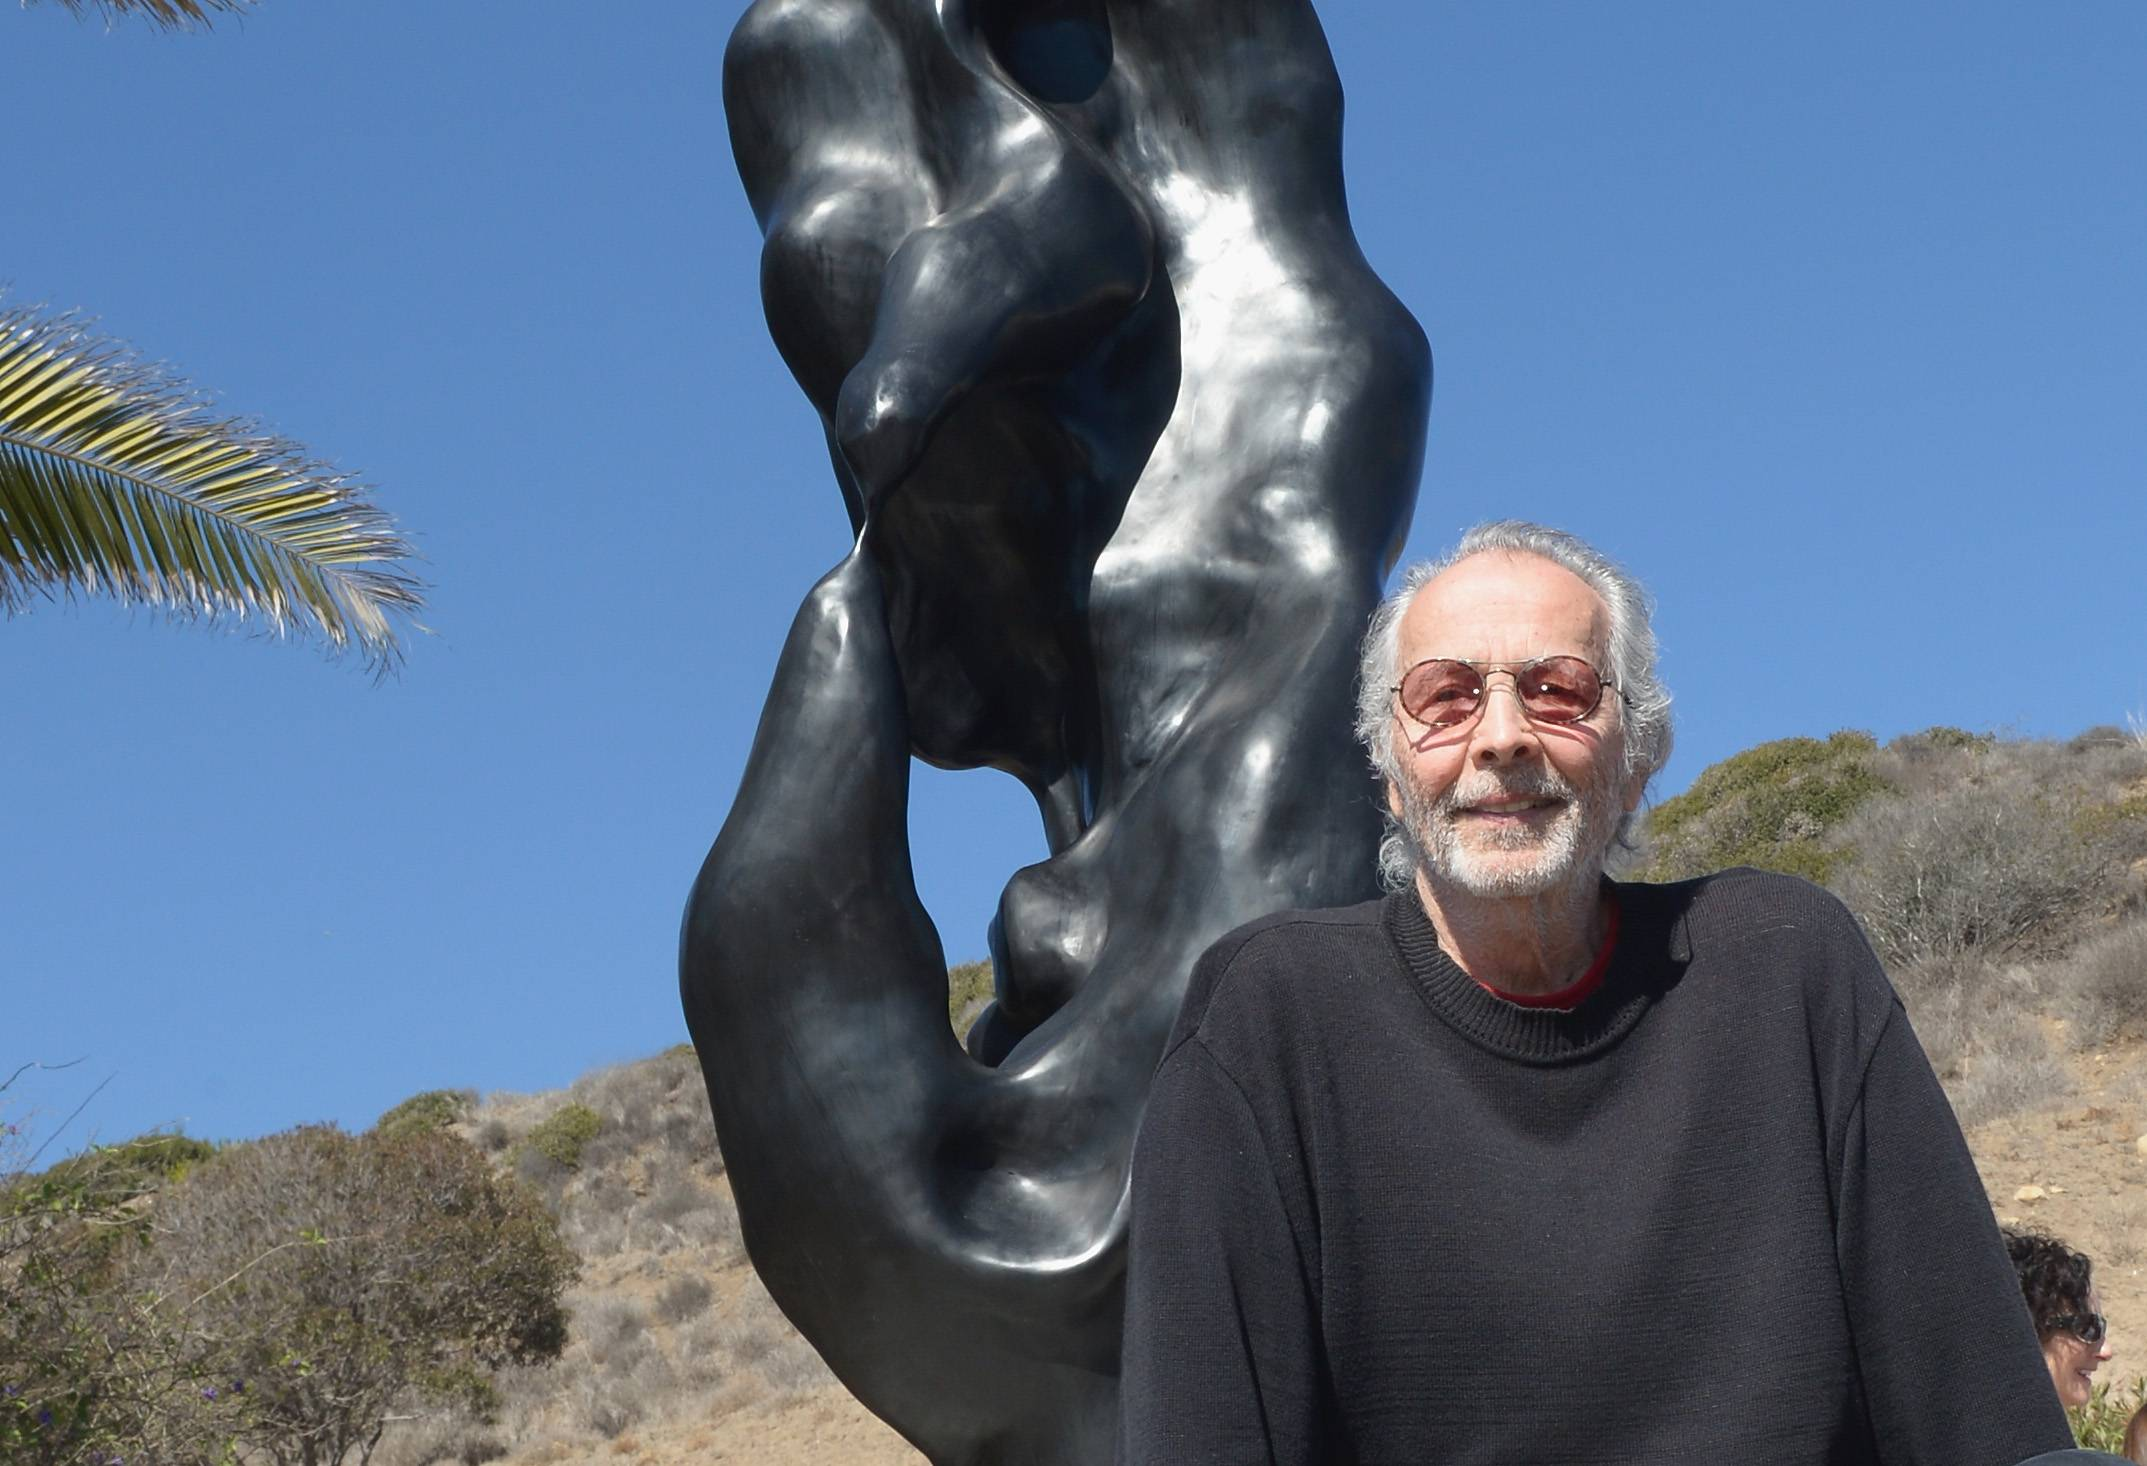 Herb Alpert And His Totem Sculpture 'Freedom' Honored in Malibu